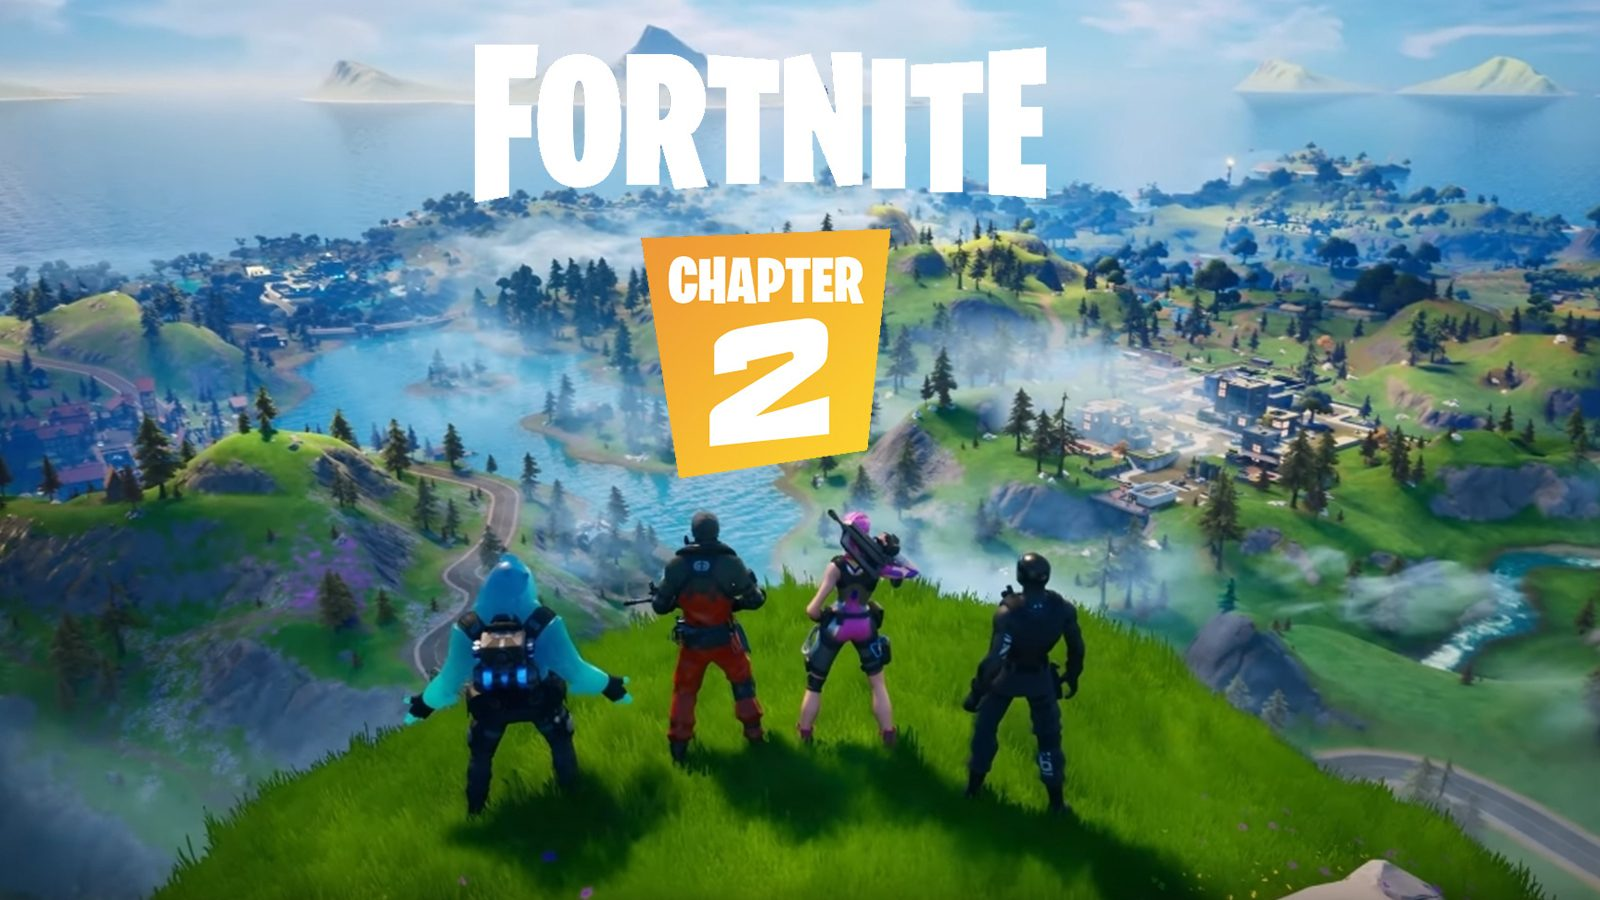 Fortnite ponovo igriv uz Chapter 2